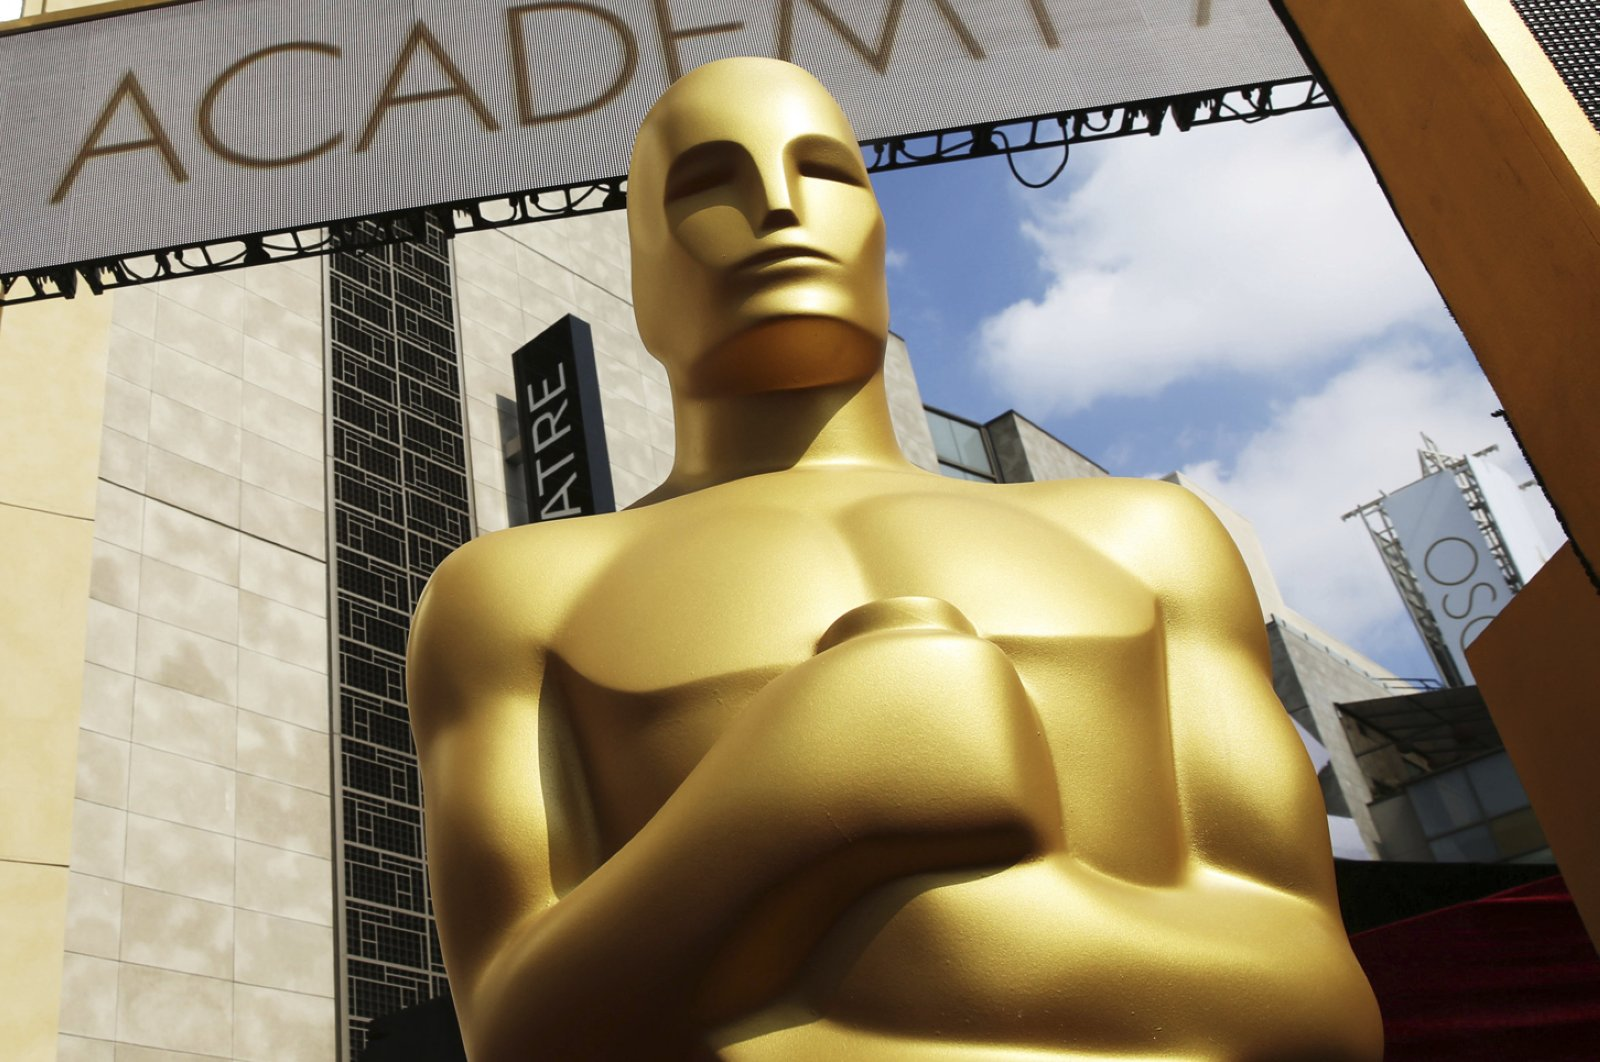 An Oscar statue appears outside the Dolby Theatre for the 87th Academy Awards in Los Angeles, Feb. 21, 2015. (AP Photo)